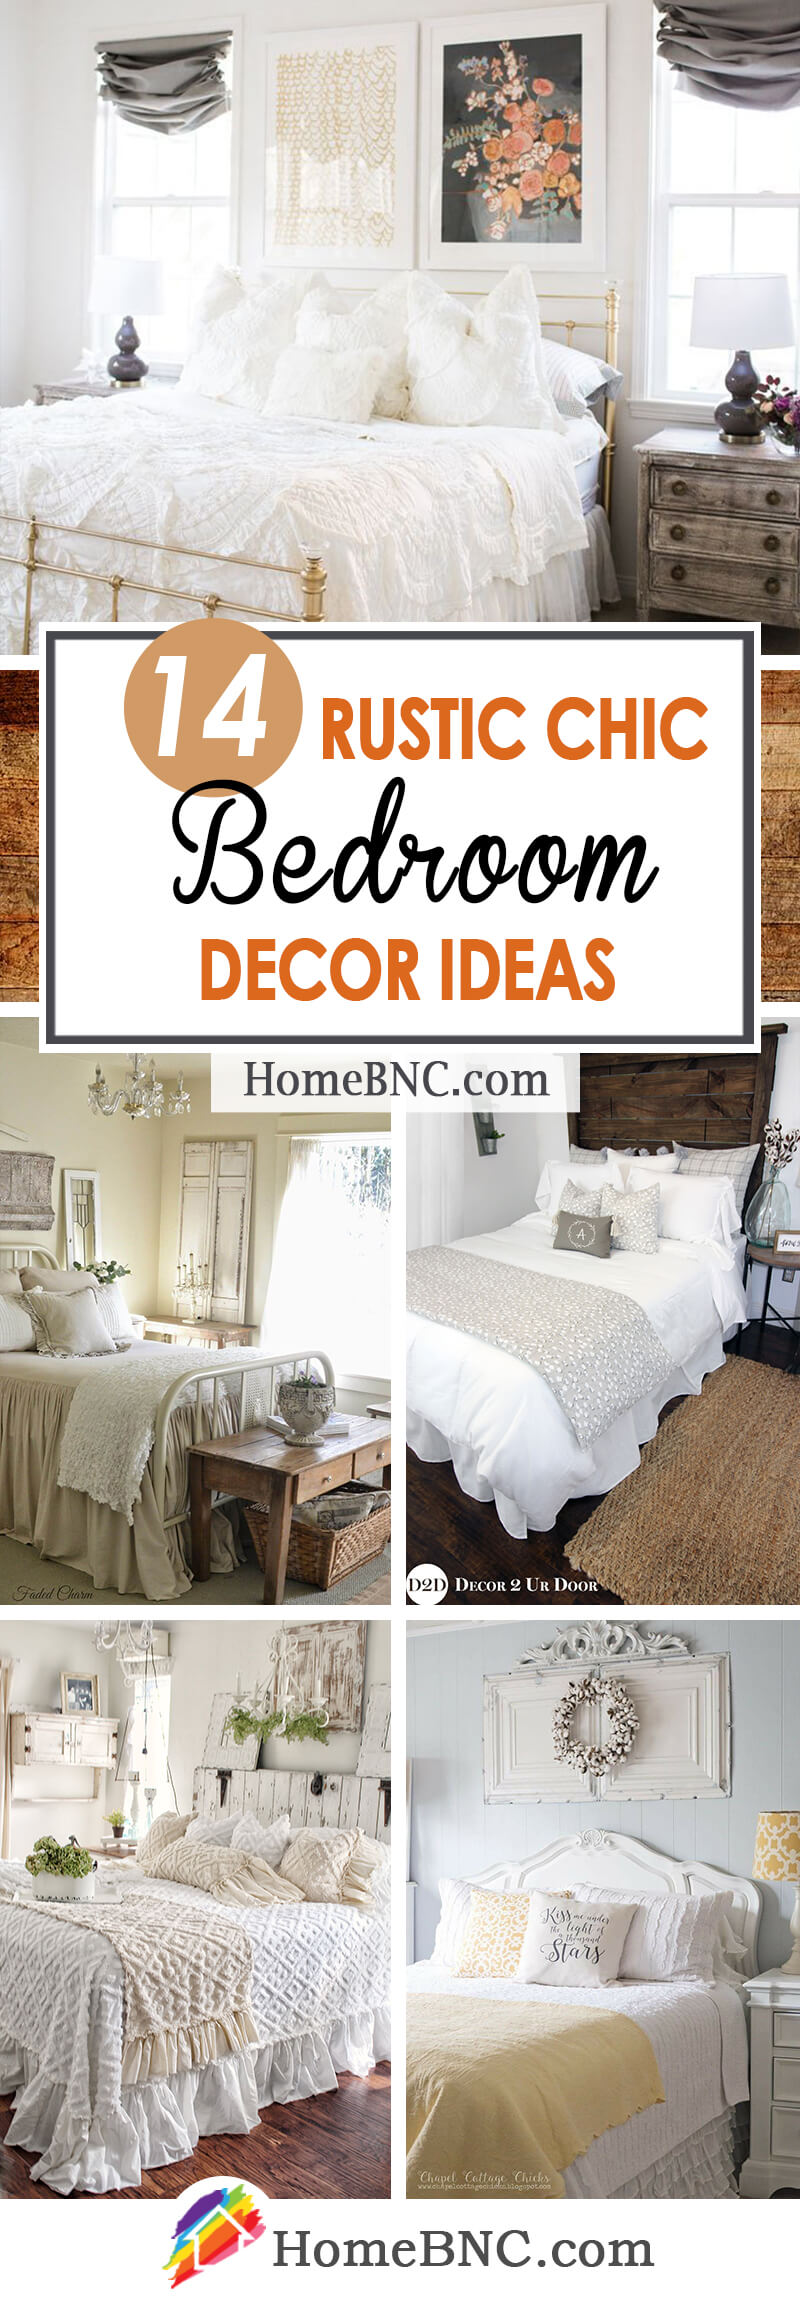 Rustic Chic Bedroom Decoration Ideas